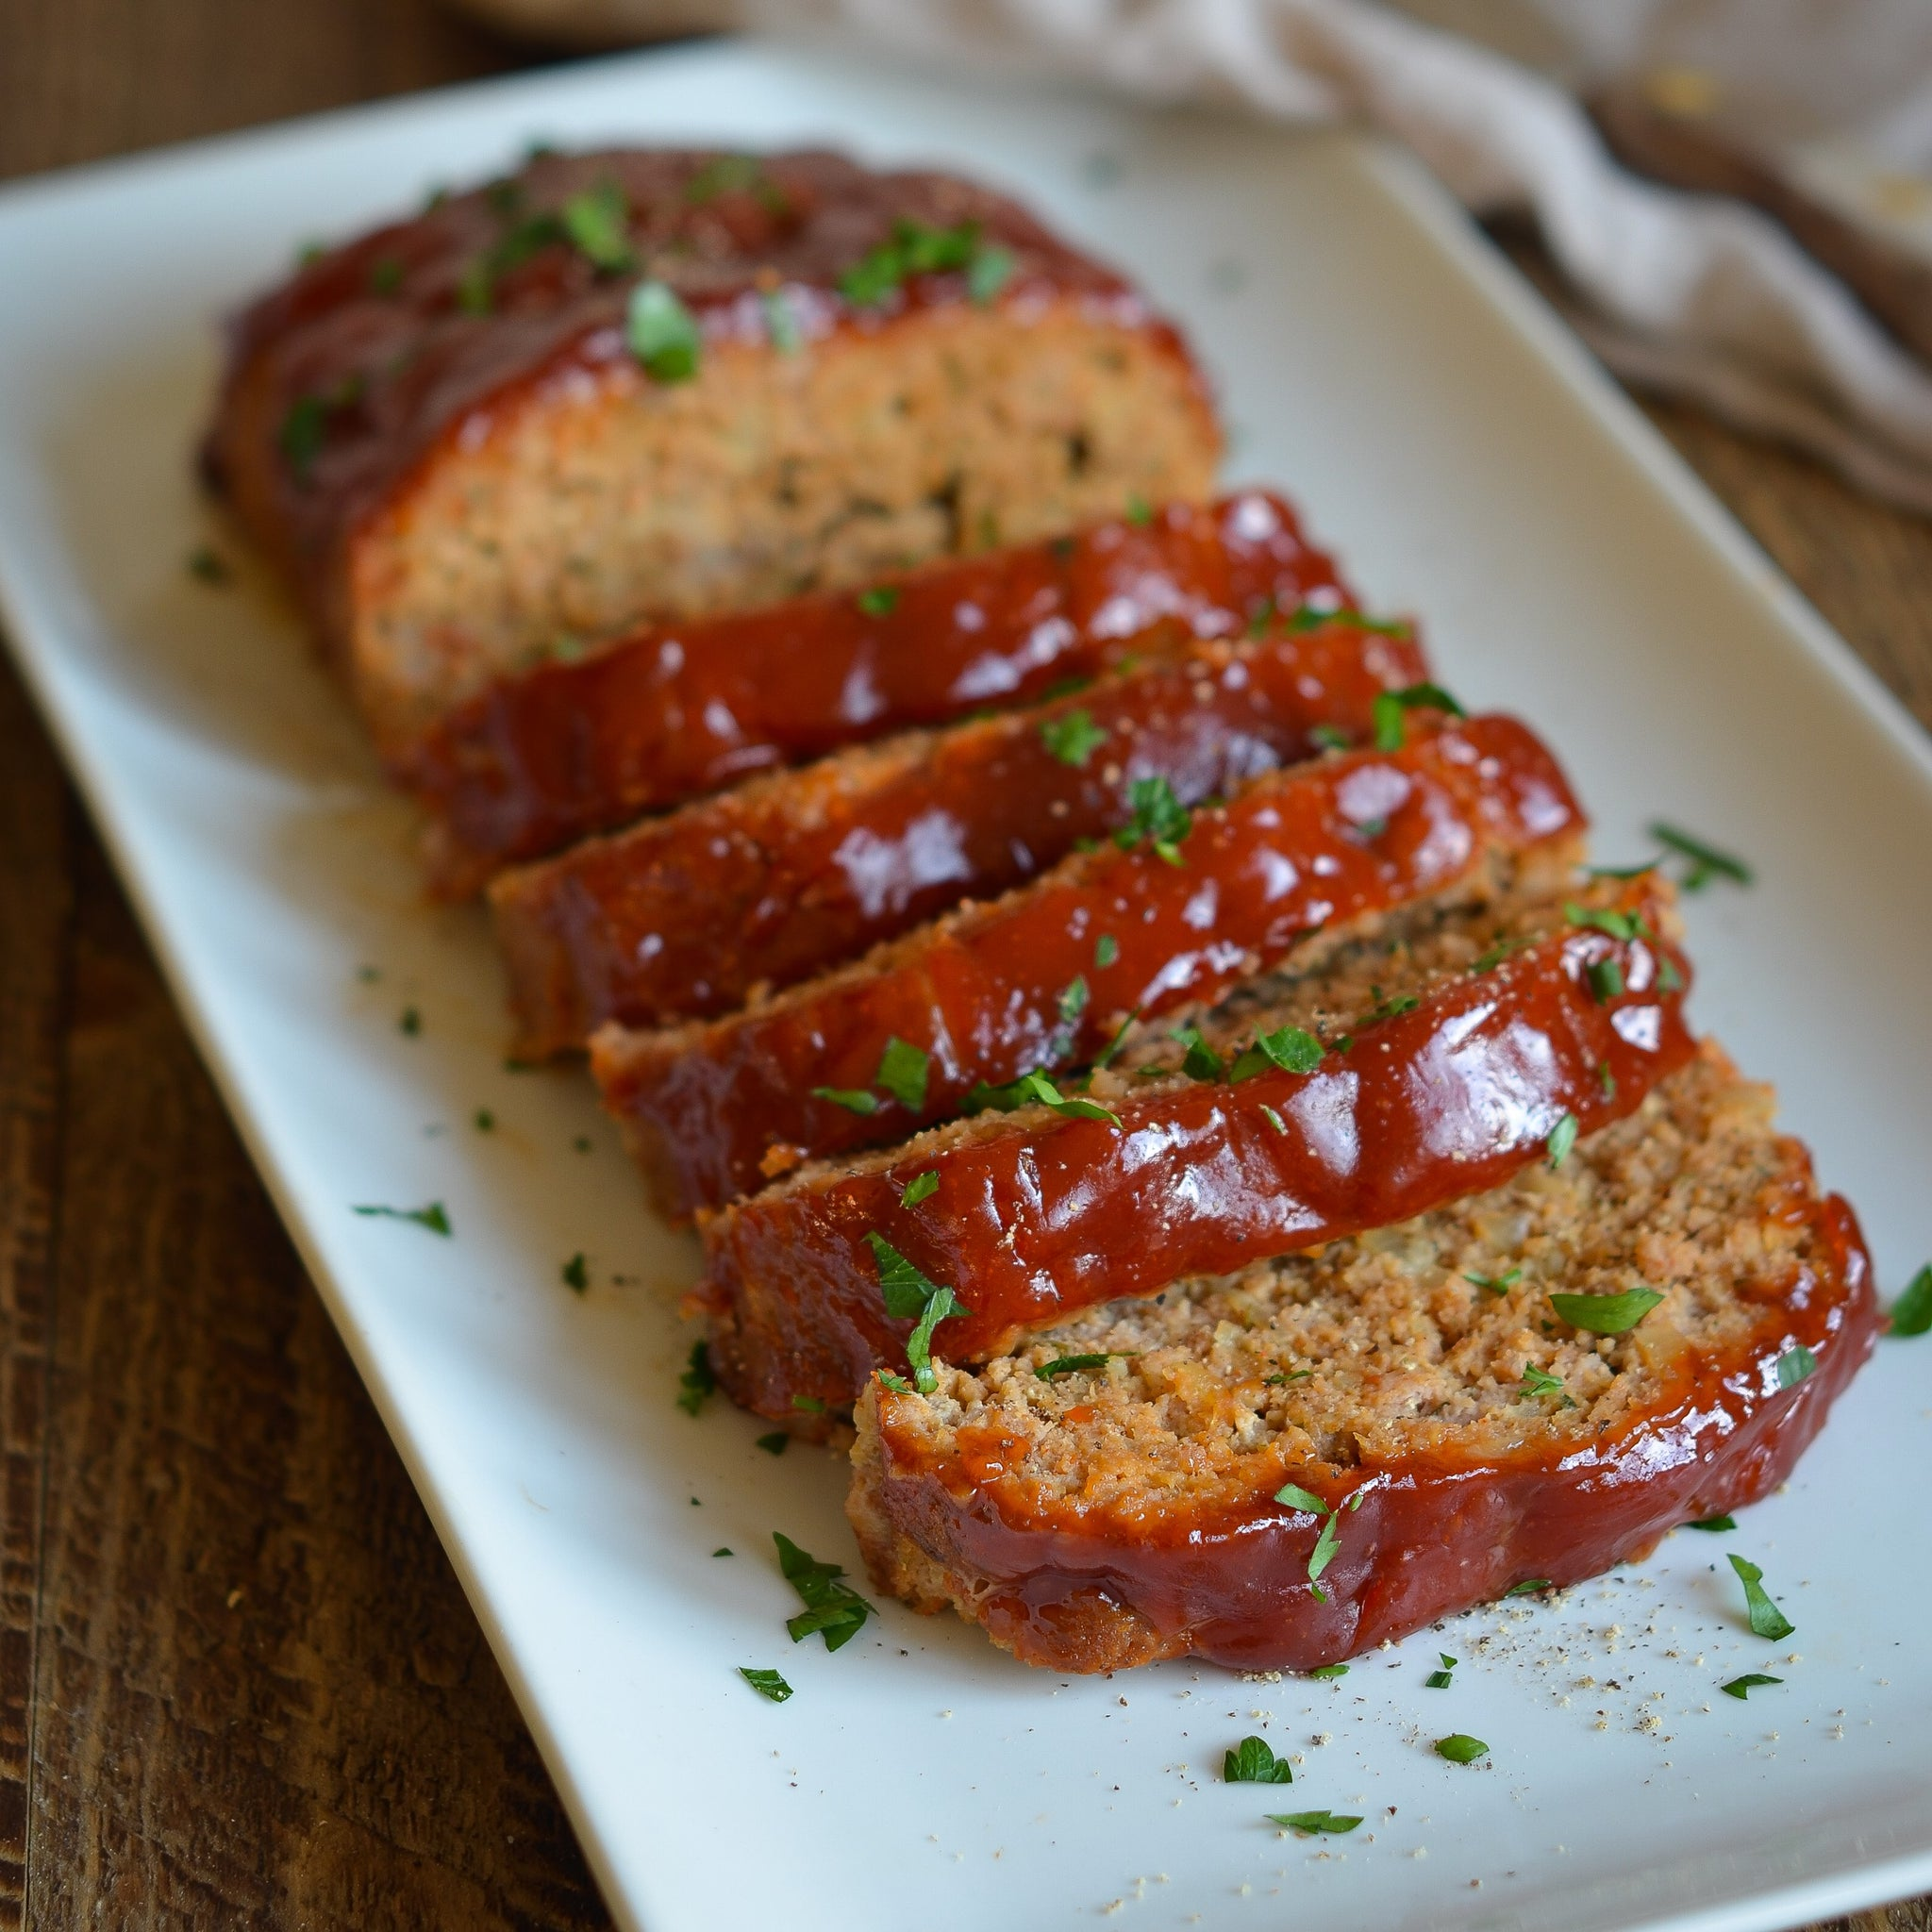 Family Style Meatloaf - Serves 2 - 4